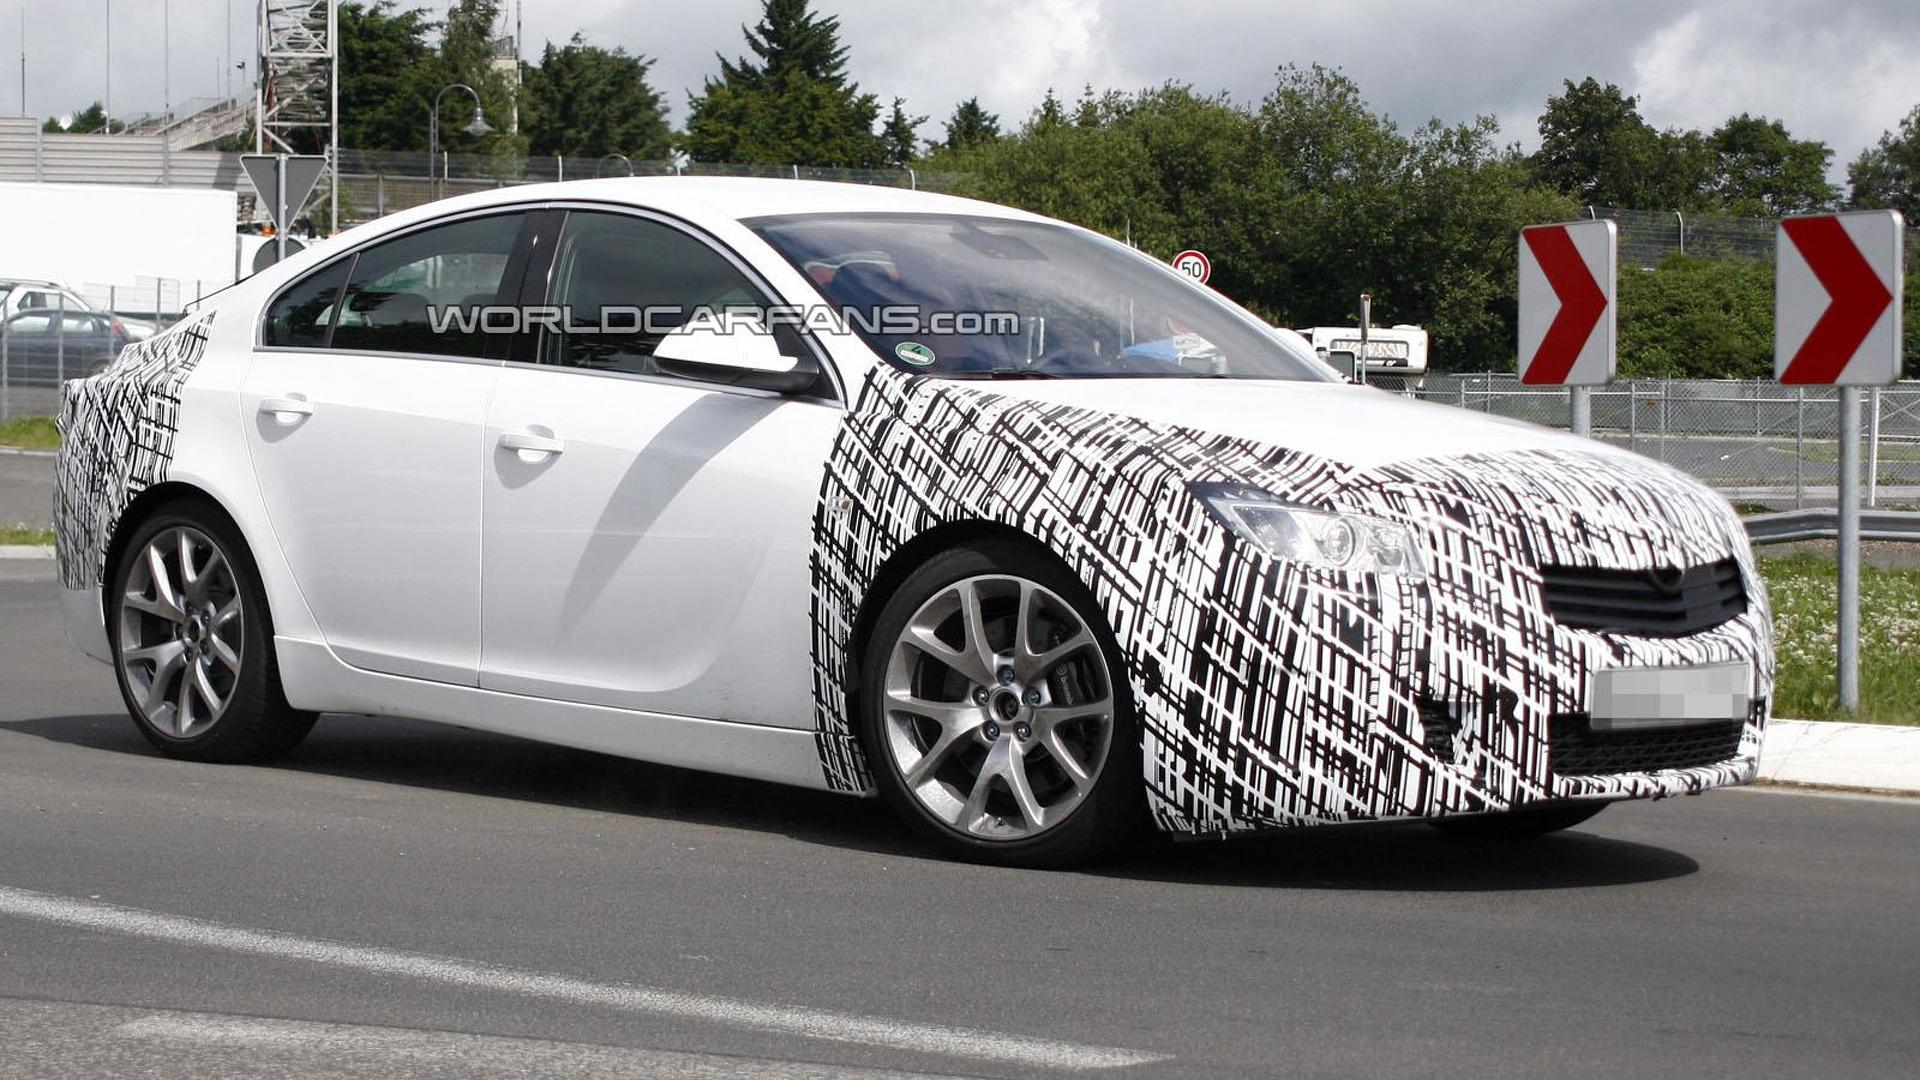 2013 Opel Insignia OPC facelift spied for the first time